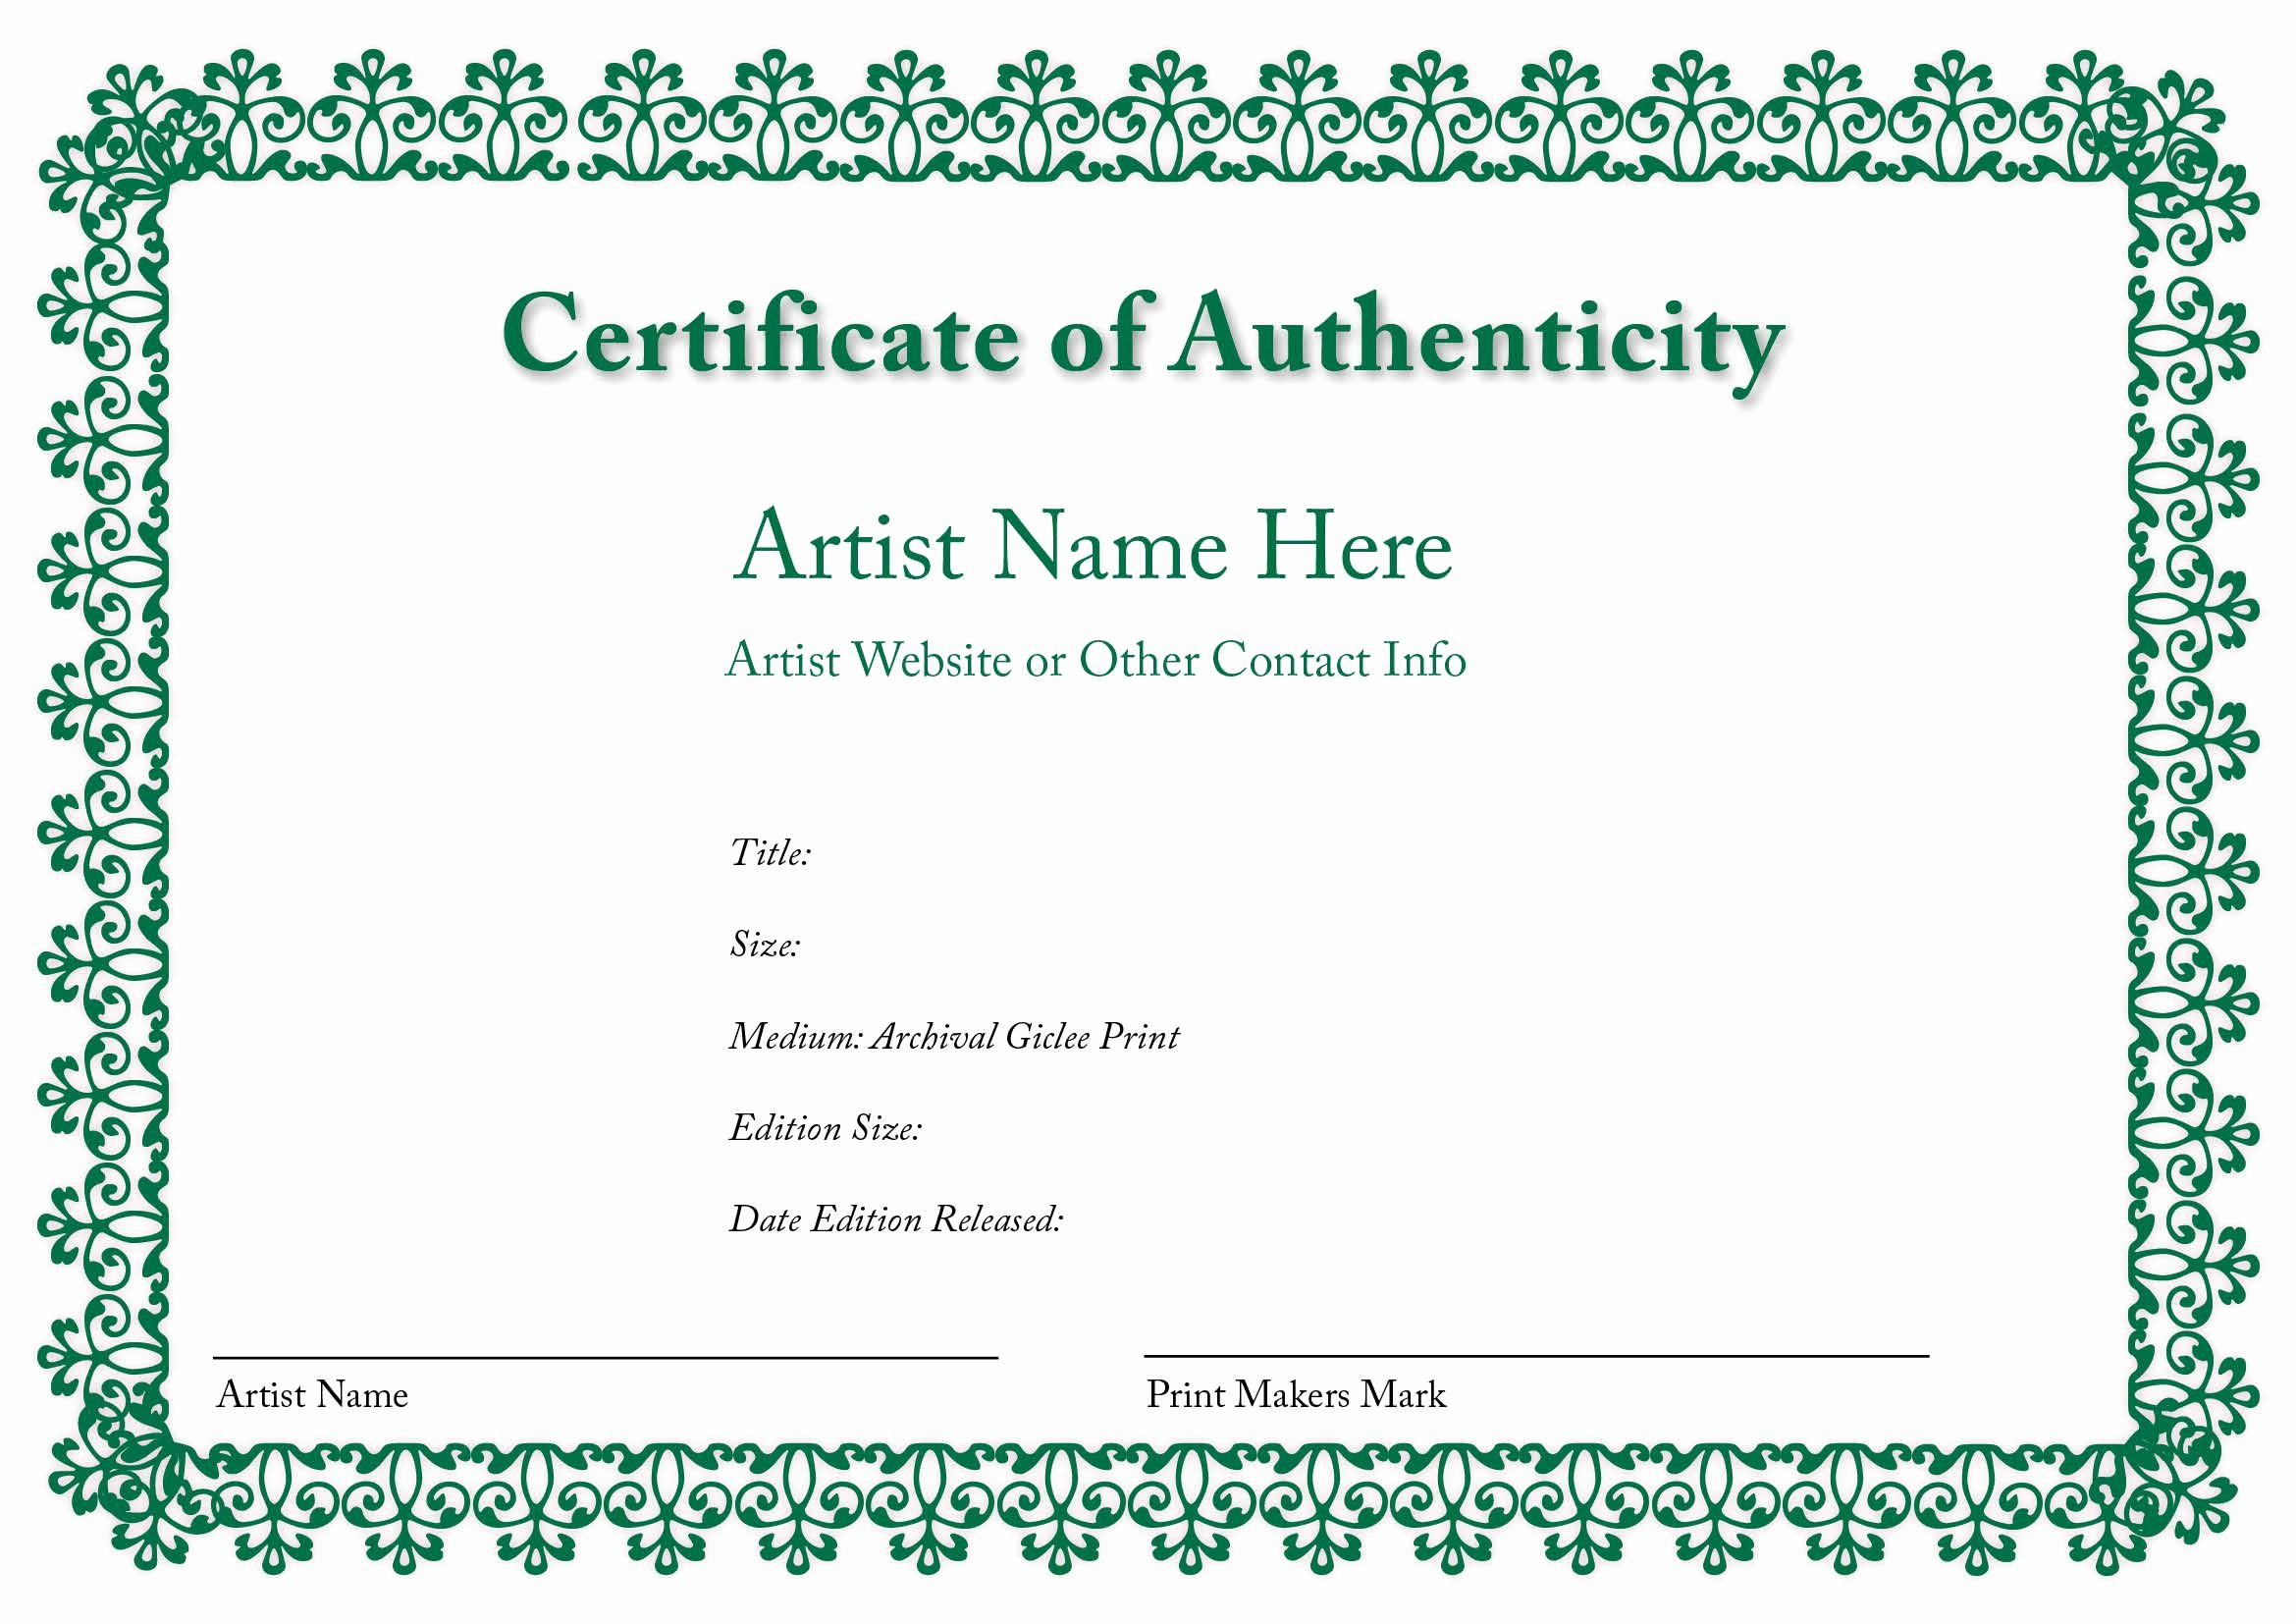 Art Certificate Of Authenticity Template New Certificate Of Authenticity Of An Art Print In 2019